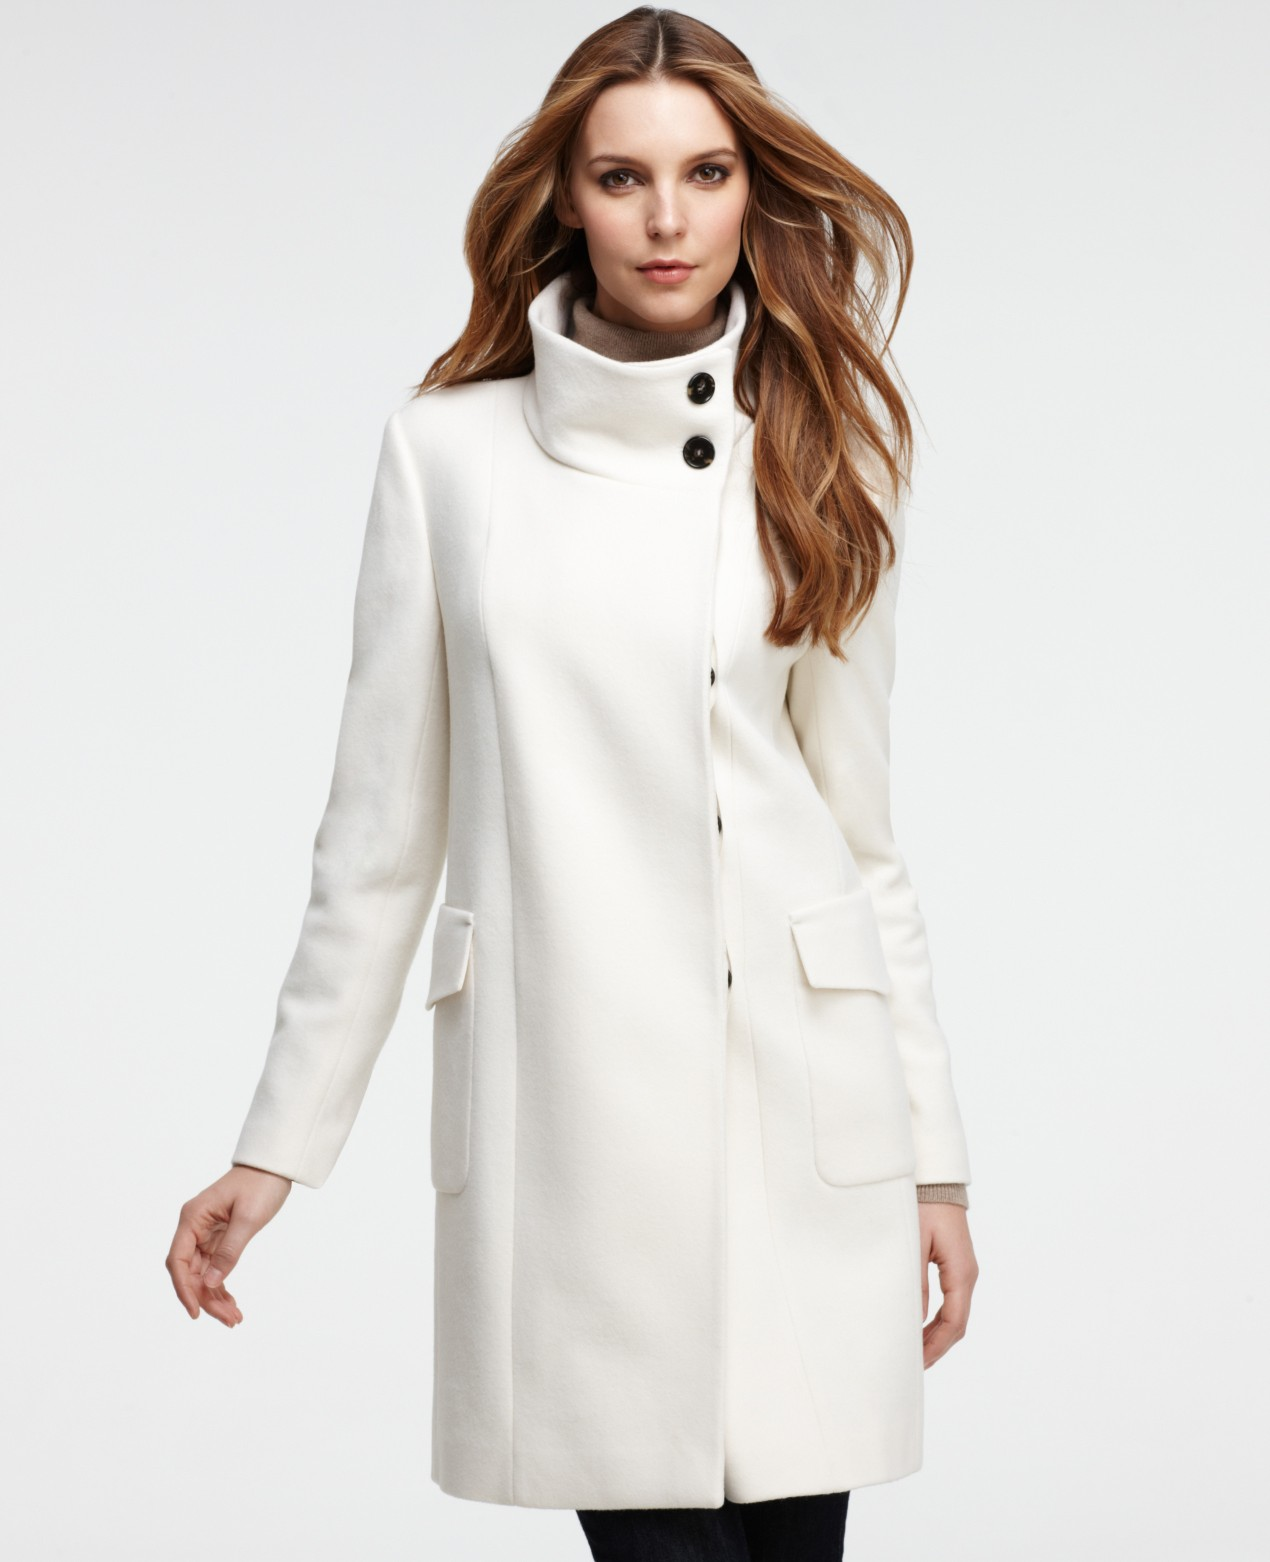 We have 9 Ann Taylor promotional codes for you to choose from including 1 coupon code, and 8 sales. Most popular now: Sign up for email and get $25 Off Your Full-Price Purchase of $75 or more. Latest offer: Sign up for email and get $25 Off Your Full-Price Purchase of $75 or more.